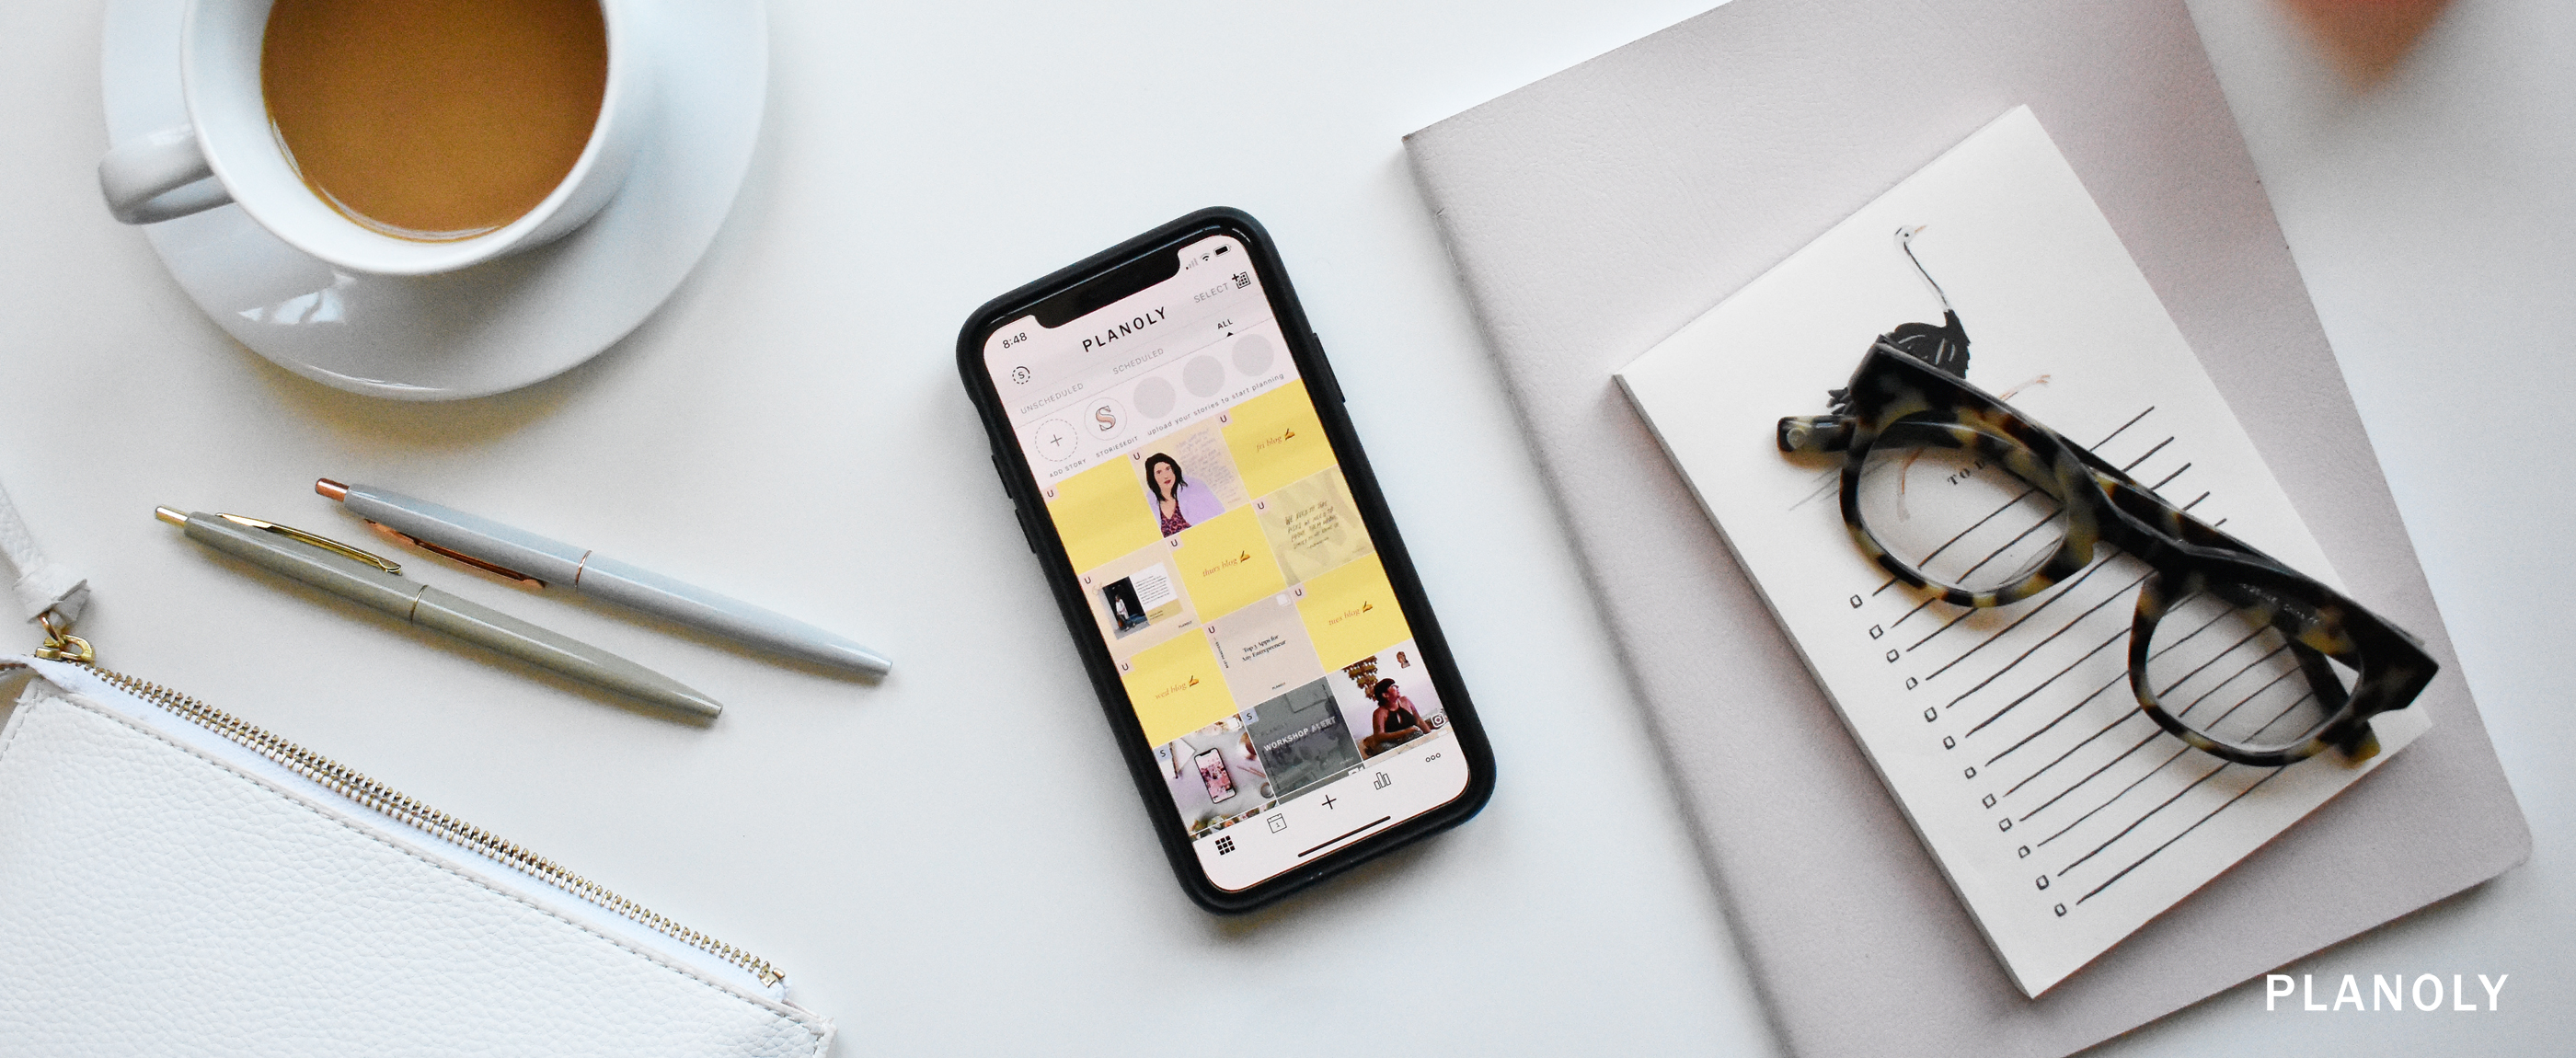 PLANOLY-Blog-Post-PLANOLYs-new-look-and-IG-Stories-Planner-Banner-2